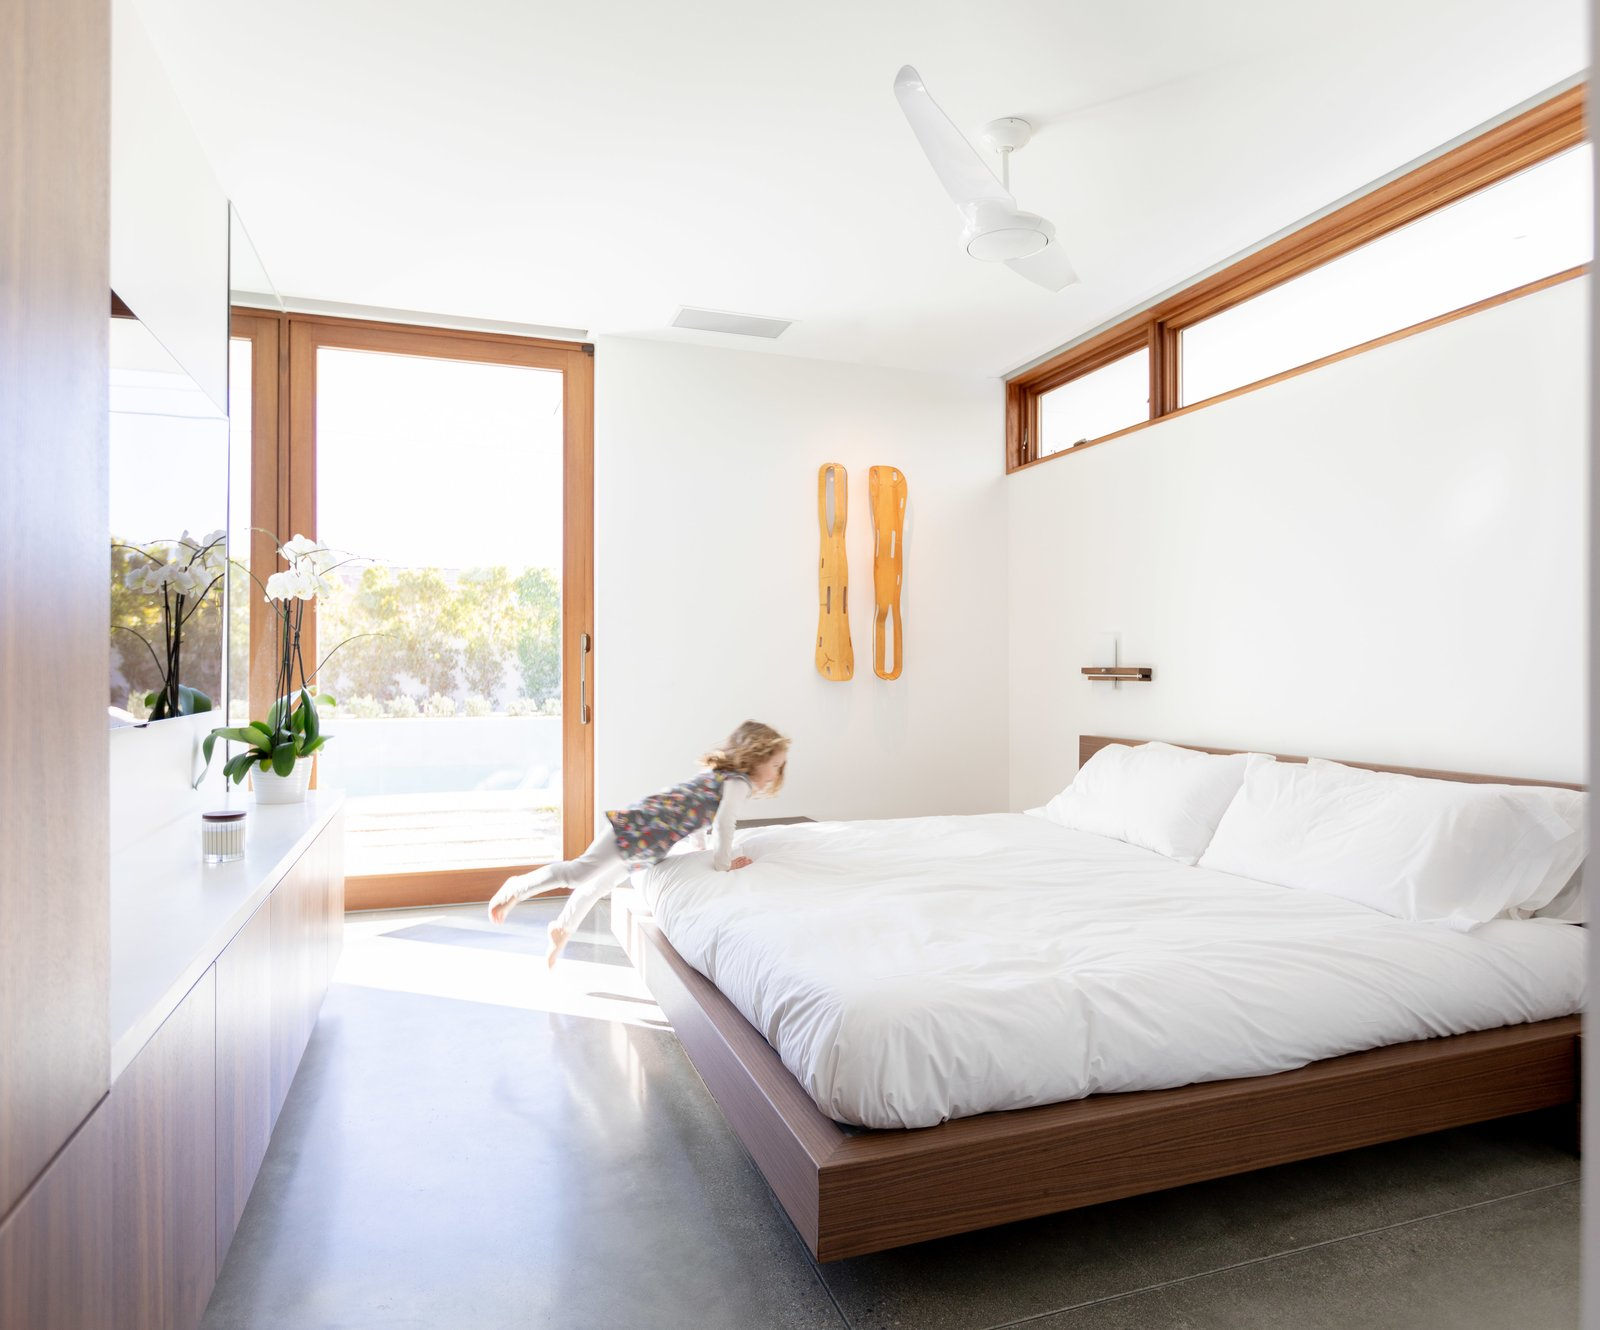 """Bedroom, Bed, Accent Lighting, Wardrobe, and Ceiling Lighting Thanks to the efficiency of the bedroom fans by The Modern Fan Co., the Turkels can keep the Marvin lift-and-slide doors open throughout much of the year without having to rely on air conditioning. """"We want to be able to keep the doors open as much as possible, yet sometimes the air movement in the desert isn't sufficient to counteract the heat, so the fans are really a must,"""" adds Meelena.  Photo 7 of 8 in Step Inside Palm Springs' Latest Indoor/Outdoor Prefab Home"""